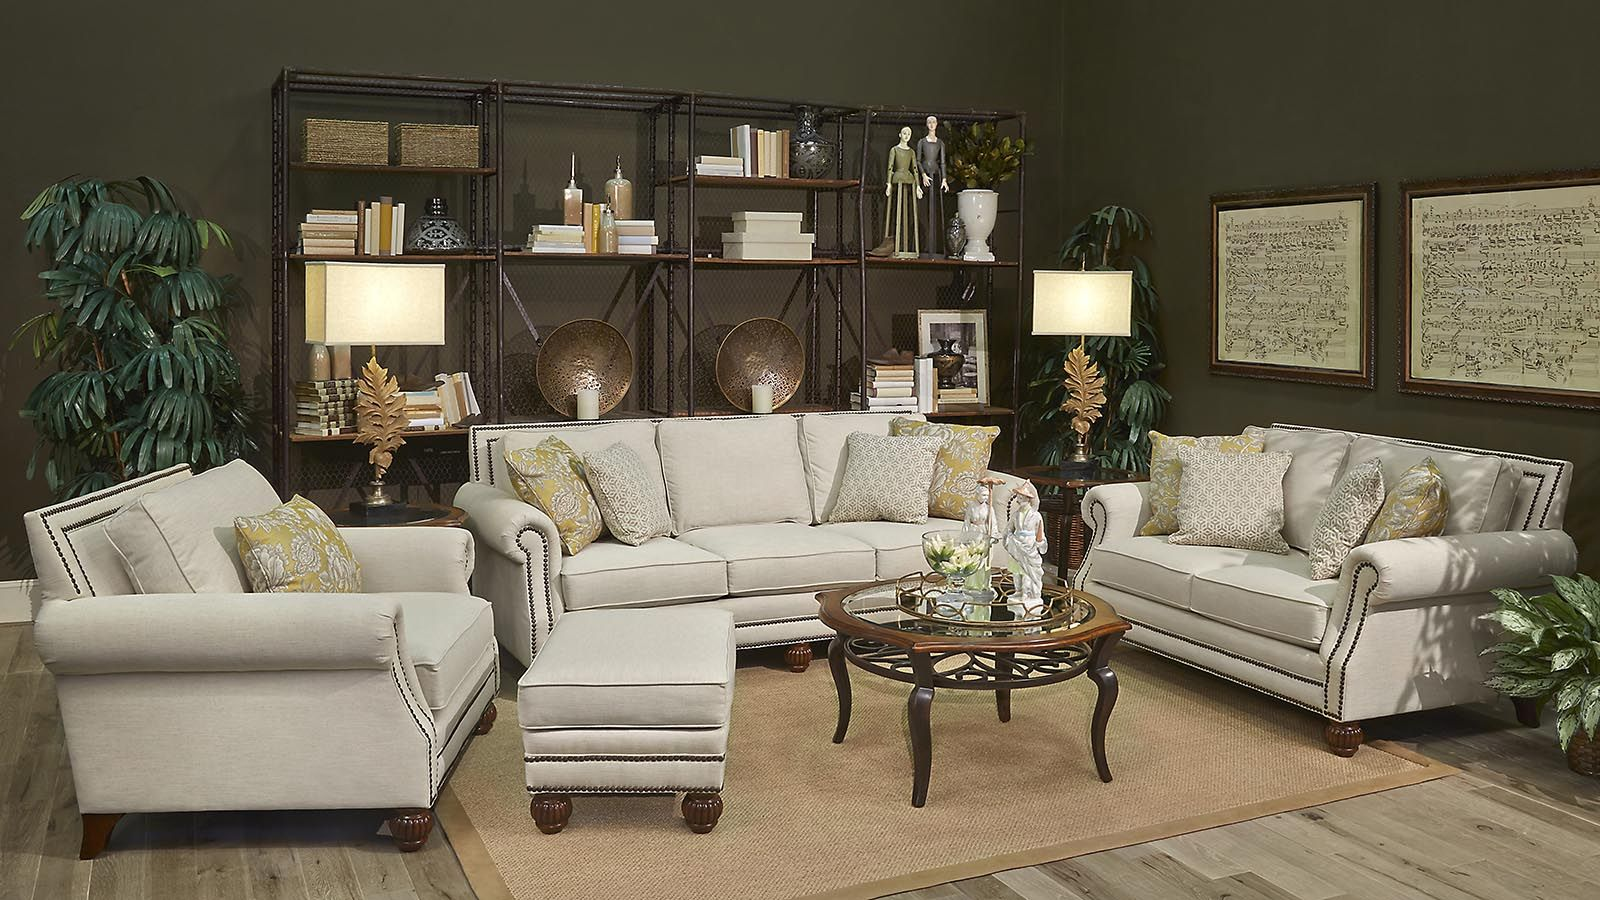 living sets d chairs superb room of decor cozy furniture livings buy for cor fresh